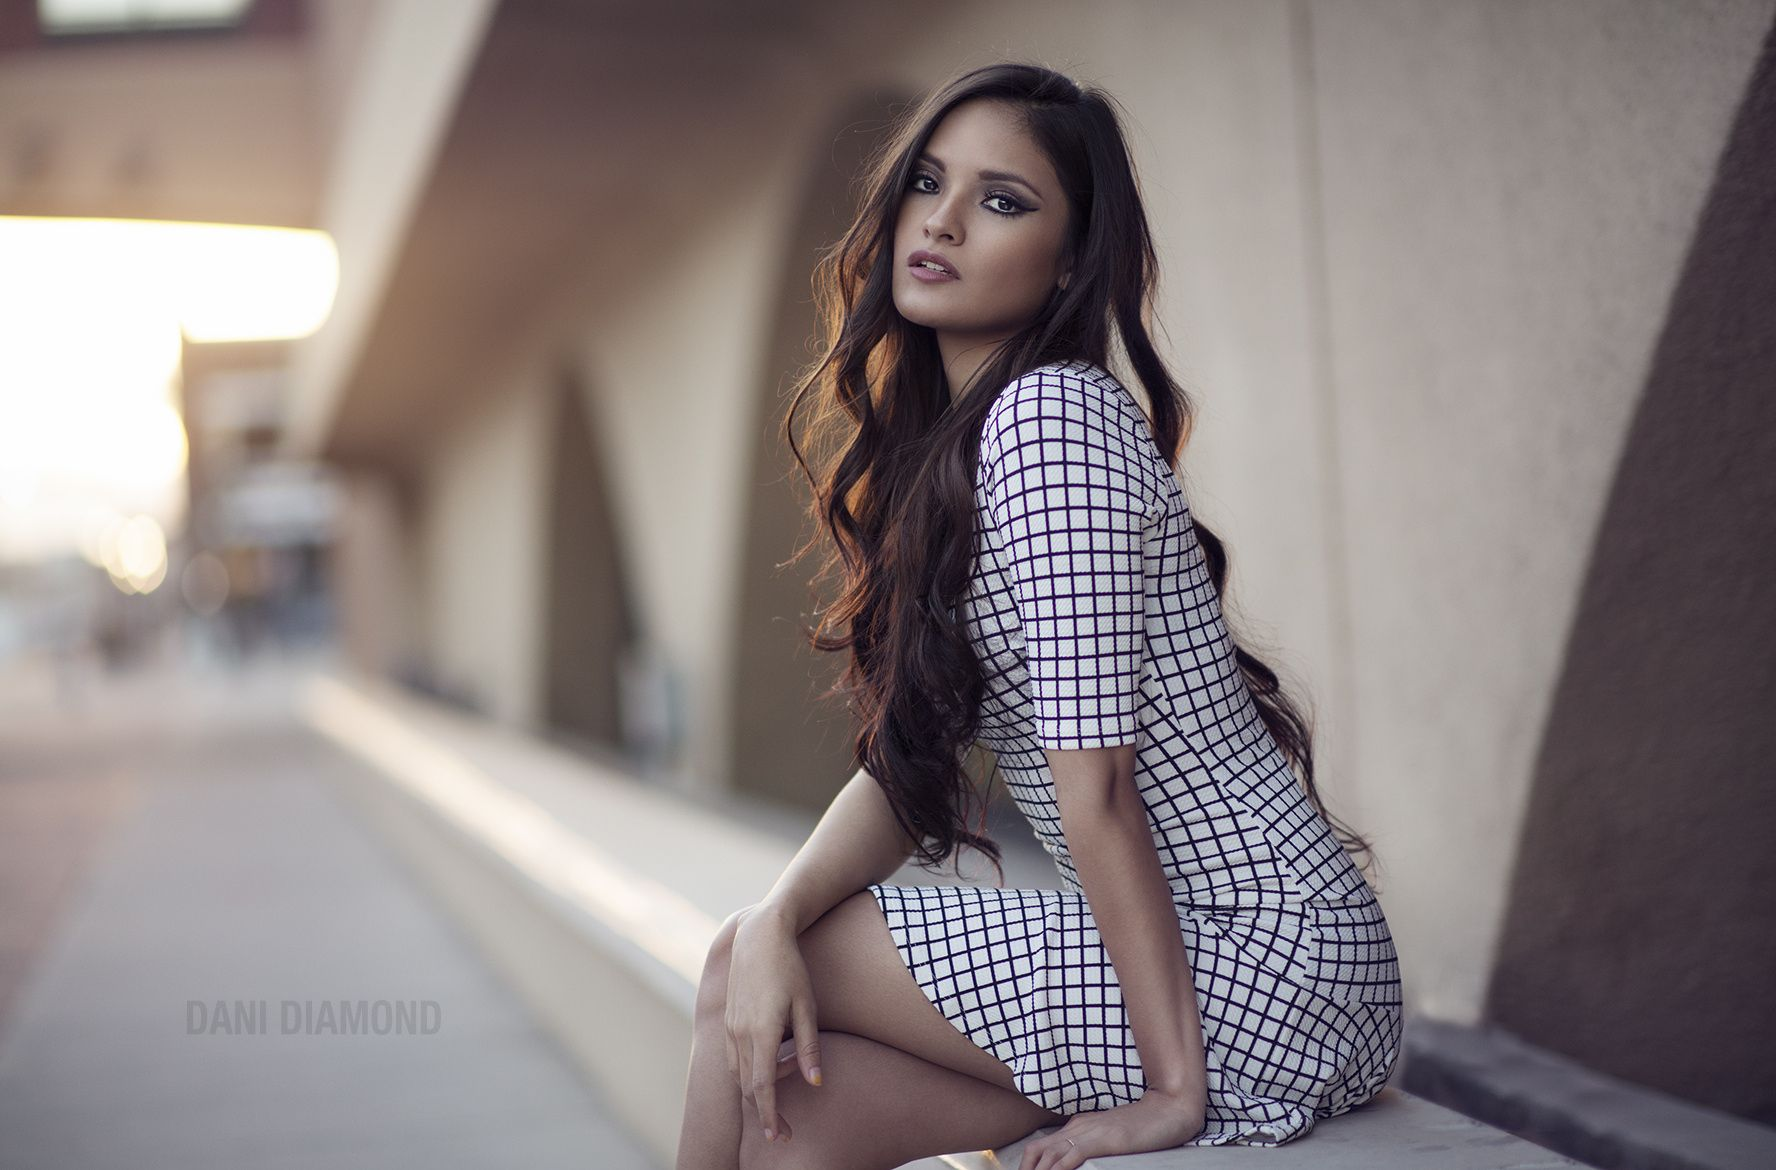 Edlyn - Natural Light by Dani Diamond on 500px